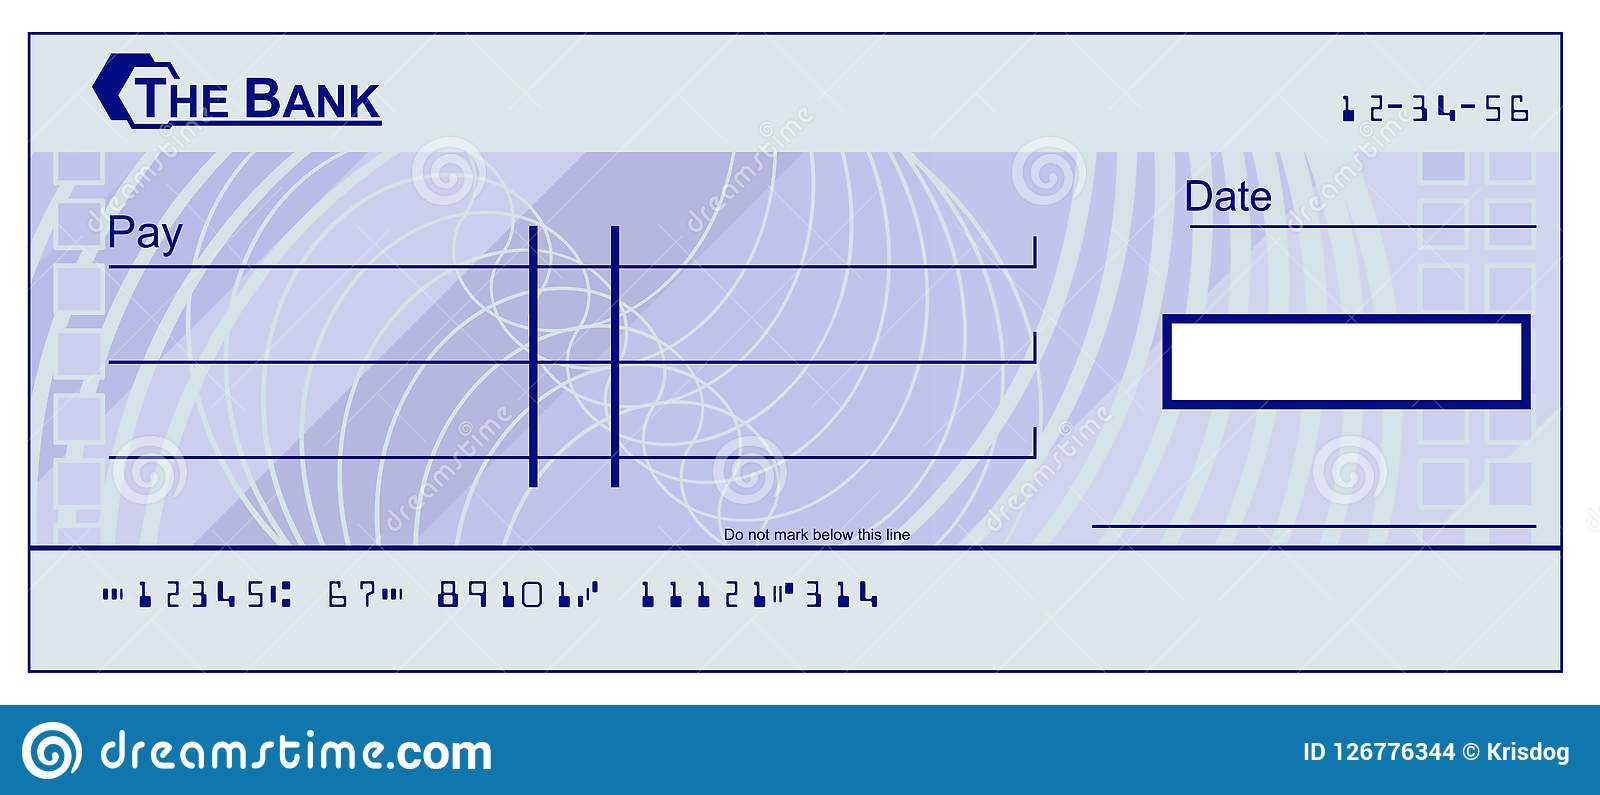 Blank Cheque Stock Vector. Illustration Of Finance, Blank Within Blank Cheque Template Download Free